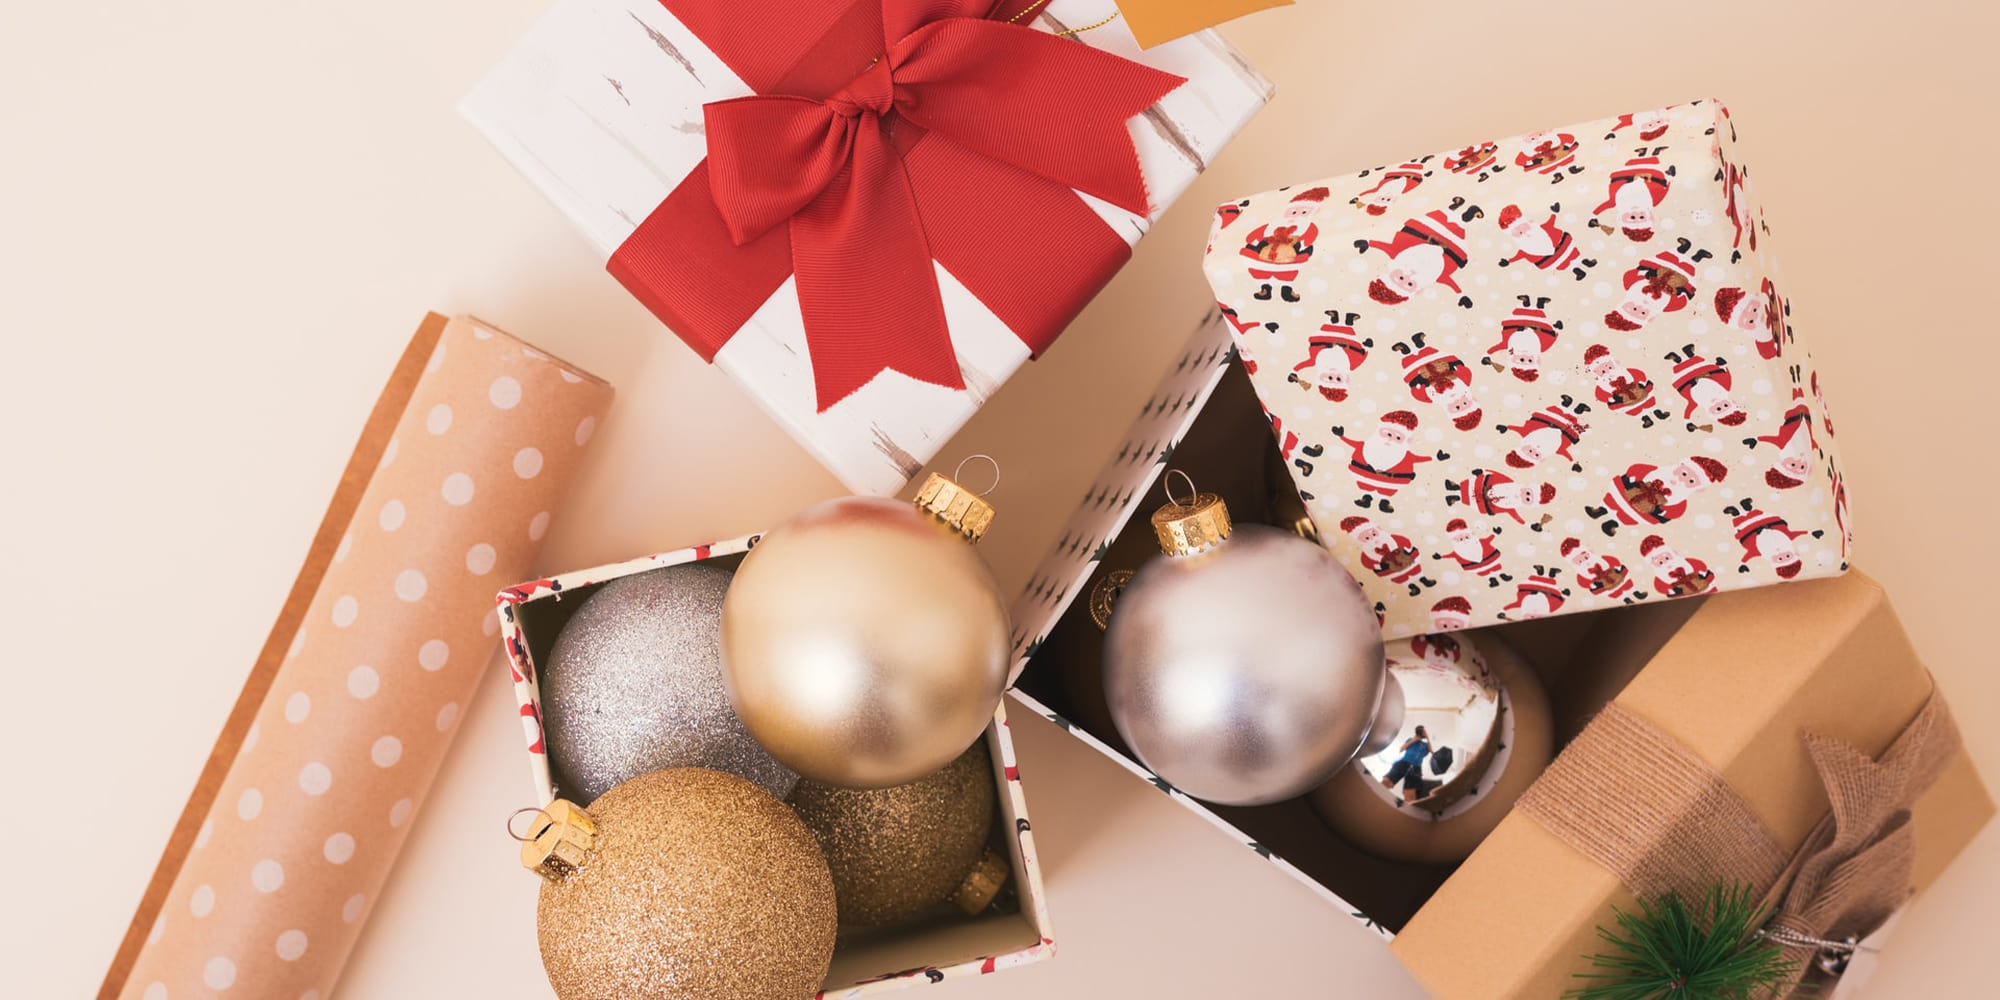 5 Influencer Email Templates for Your Upcoming Holiday Campaign